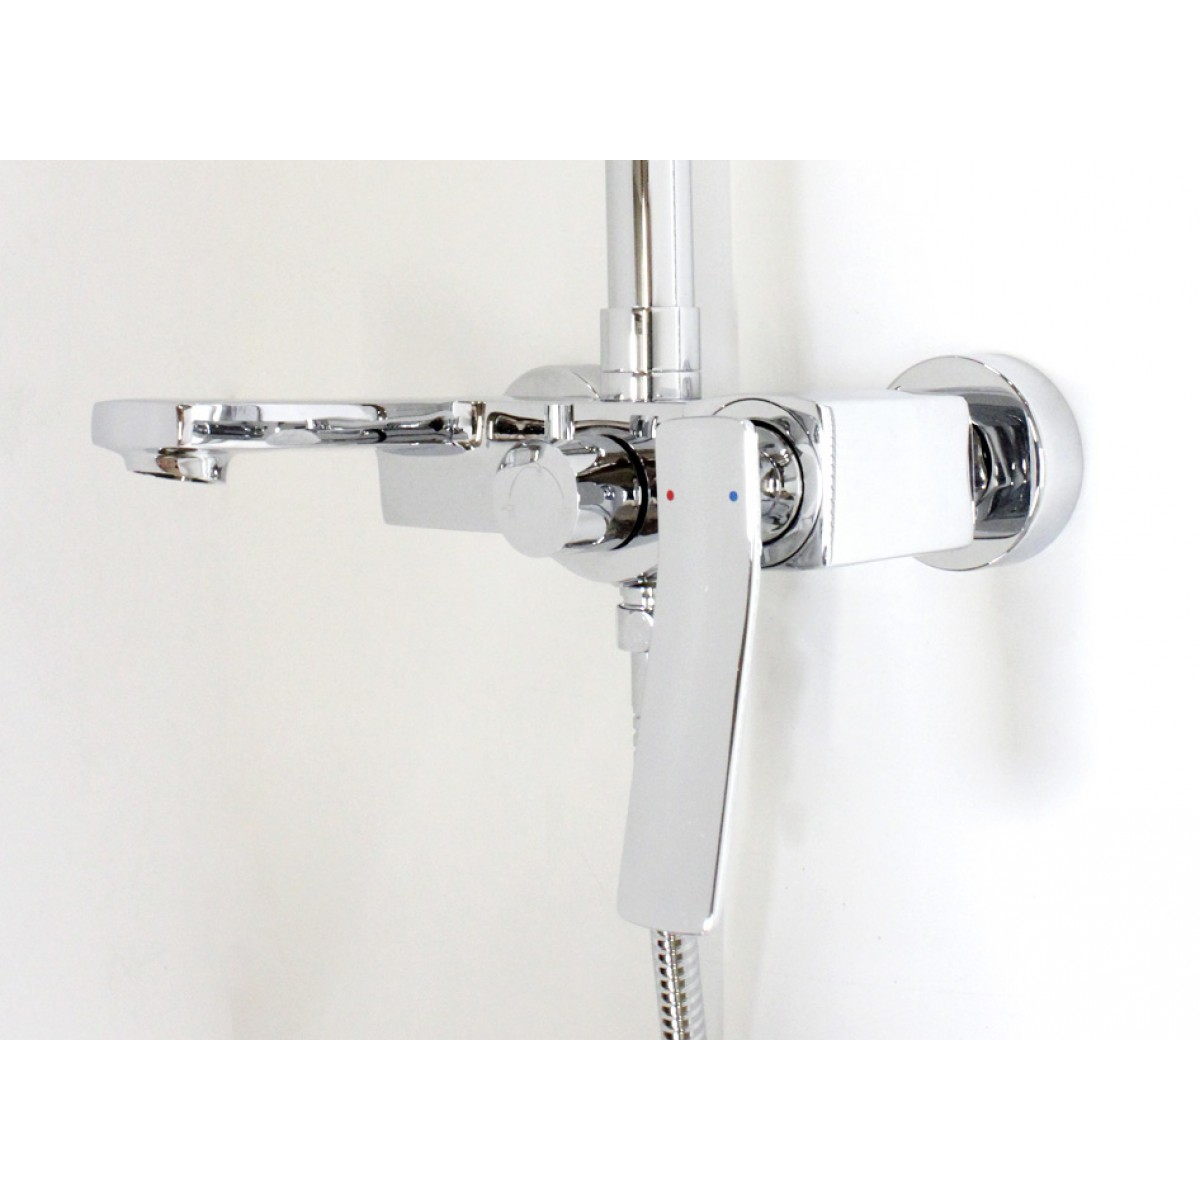 Tub Faucets With Sprayer Products In Faucet No One Water Hot Pressure Sink Not 47 Sprayer For